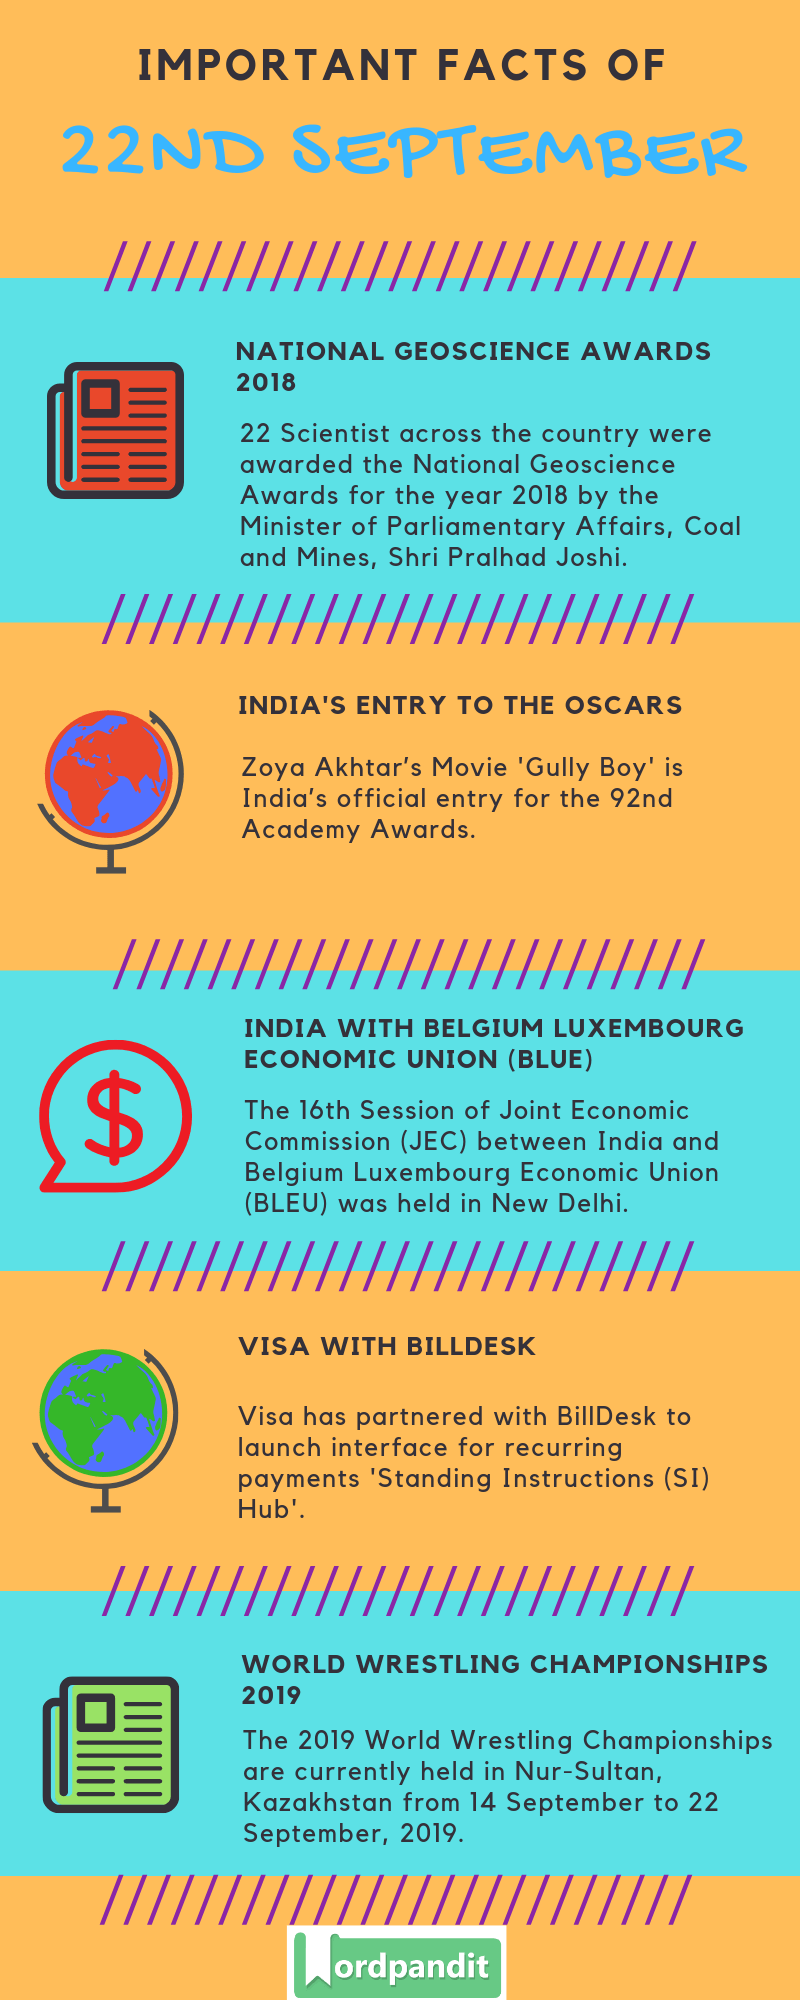 Daily Current Affairs 22 September 2019 Current Affairs Quiz 22 September 2019 Current Affairs Infographic